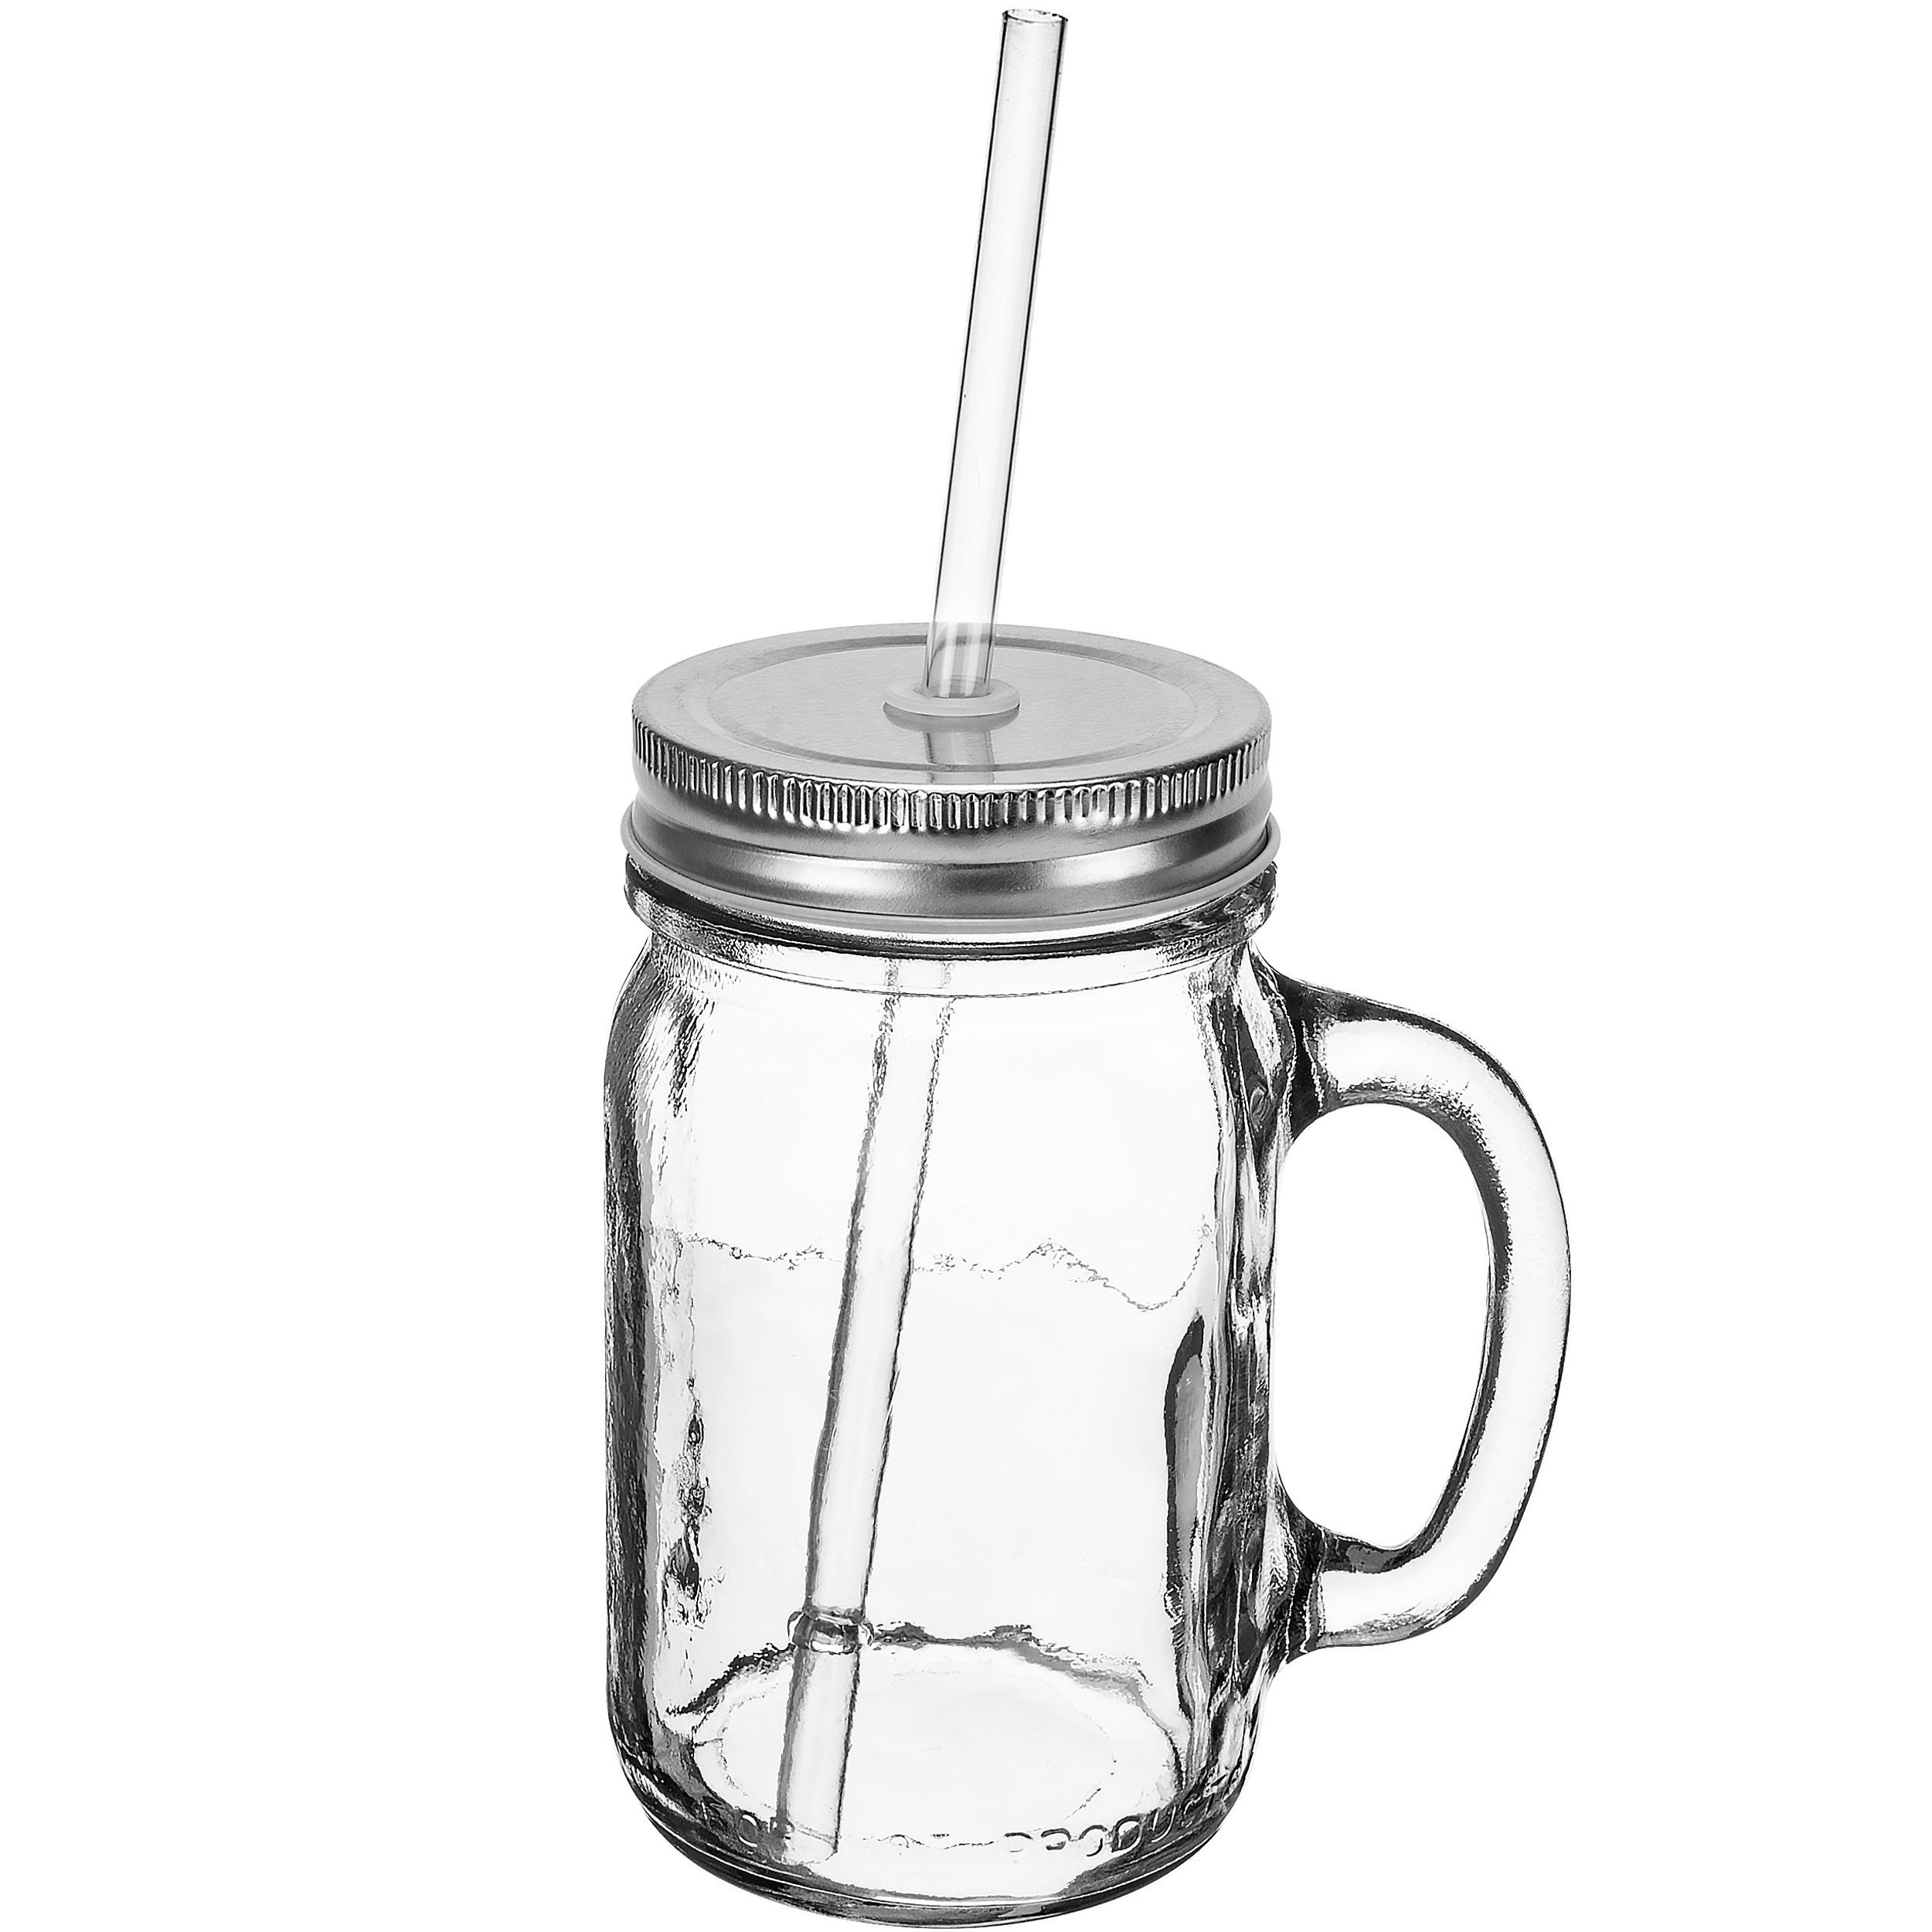 Redneck Sipper Drinking Jar w/ Handle 16oz Ball Mason Jar Reusable Acrylic Straw